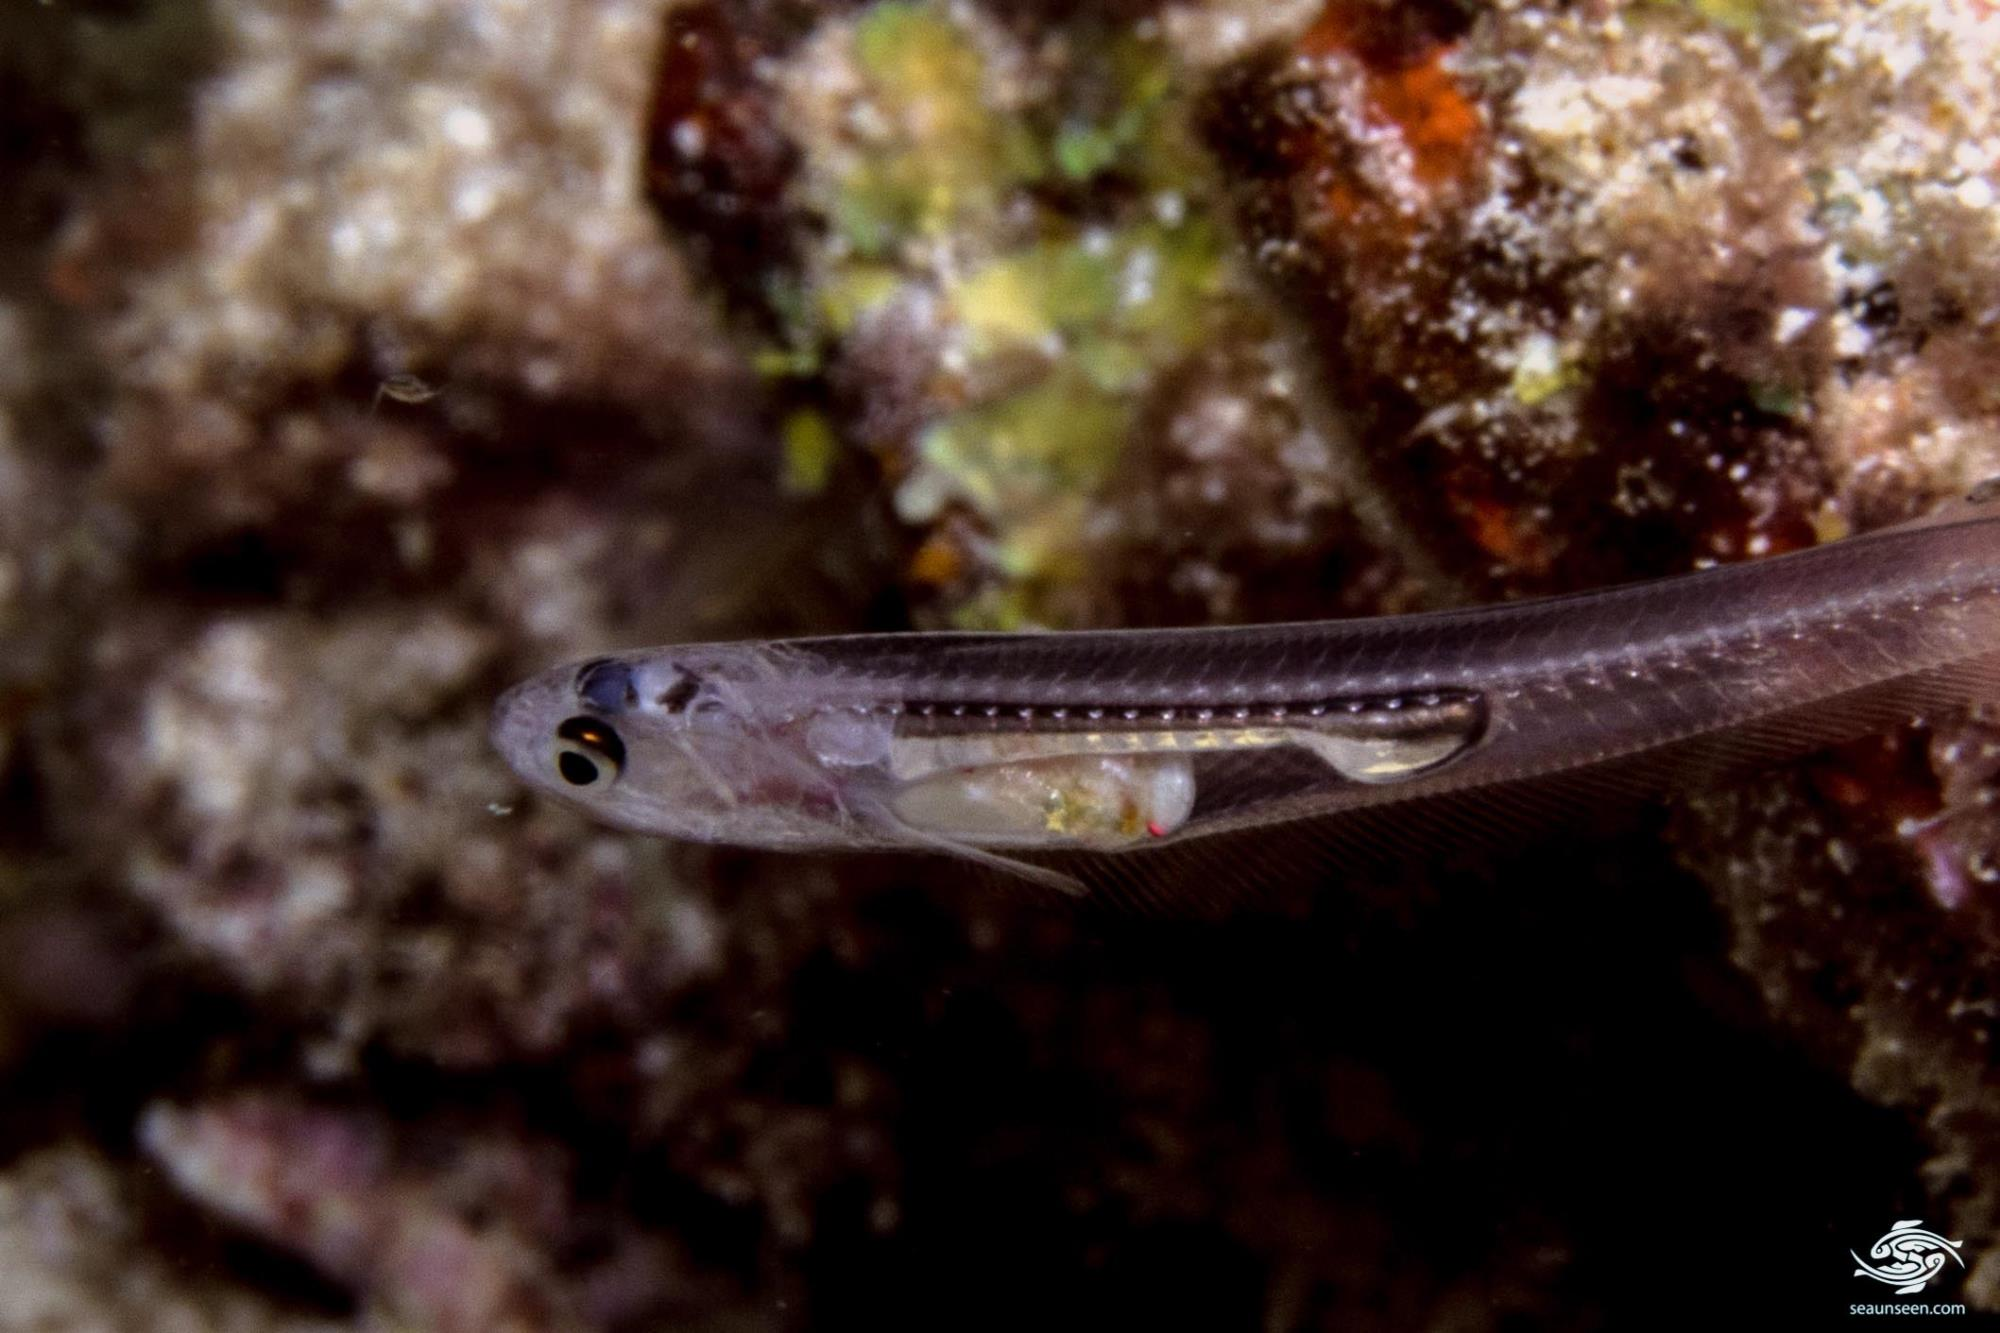 silver pearlfish, Encheliophis homei